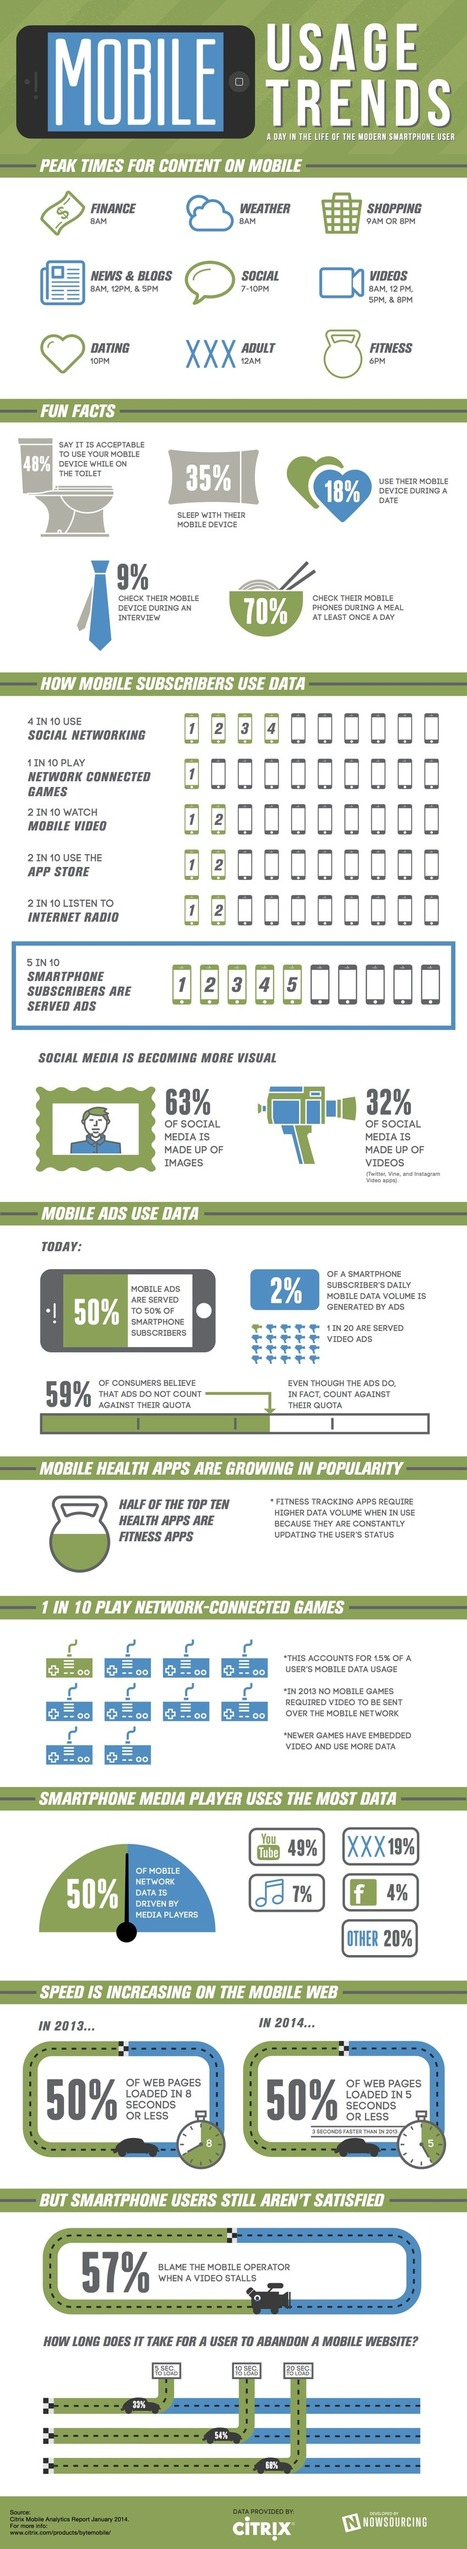 A Day in the Life of the Modern Smartphone User [Infographic] | Branding | Scoop.it